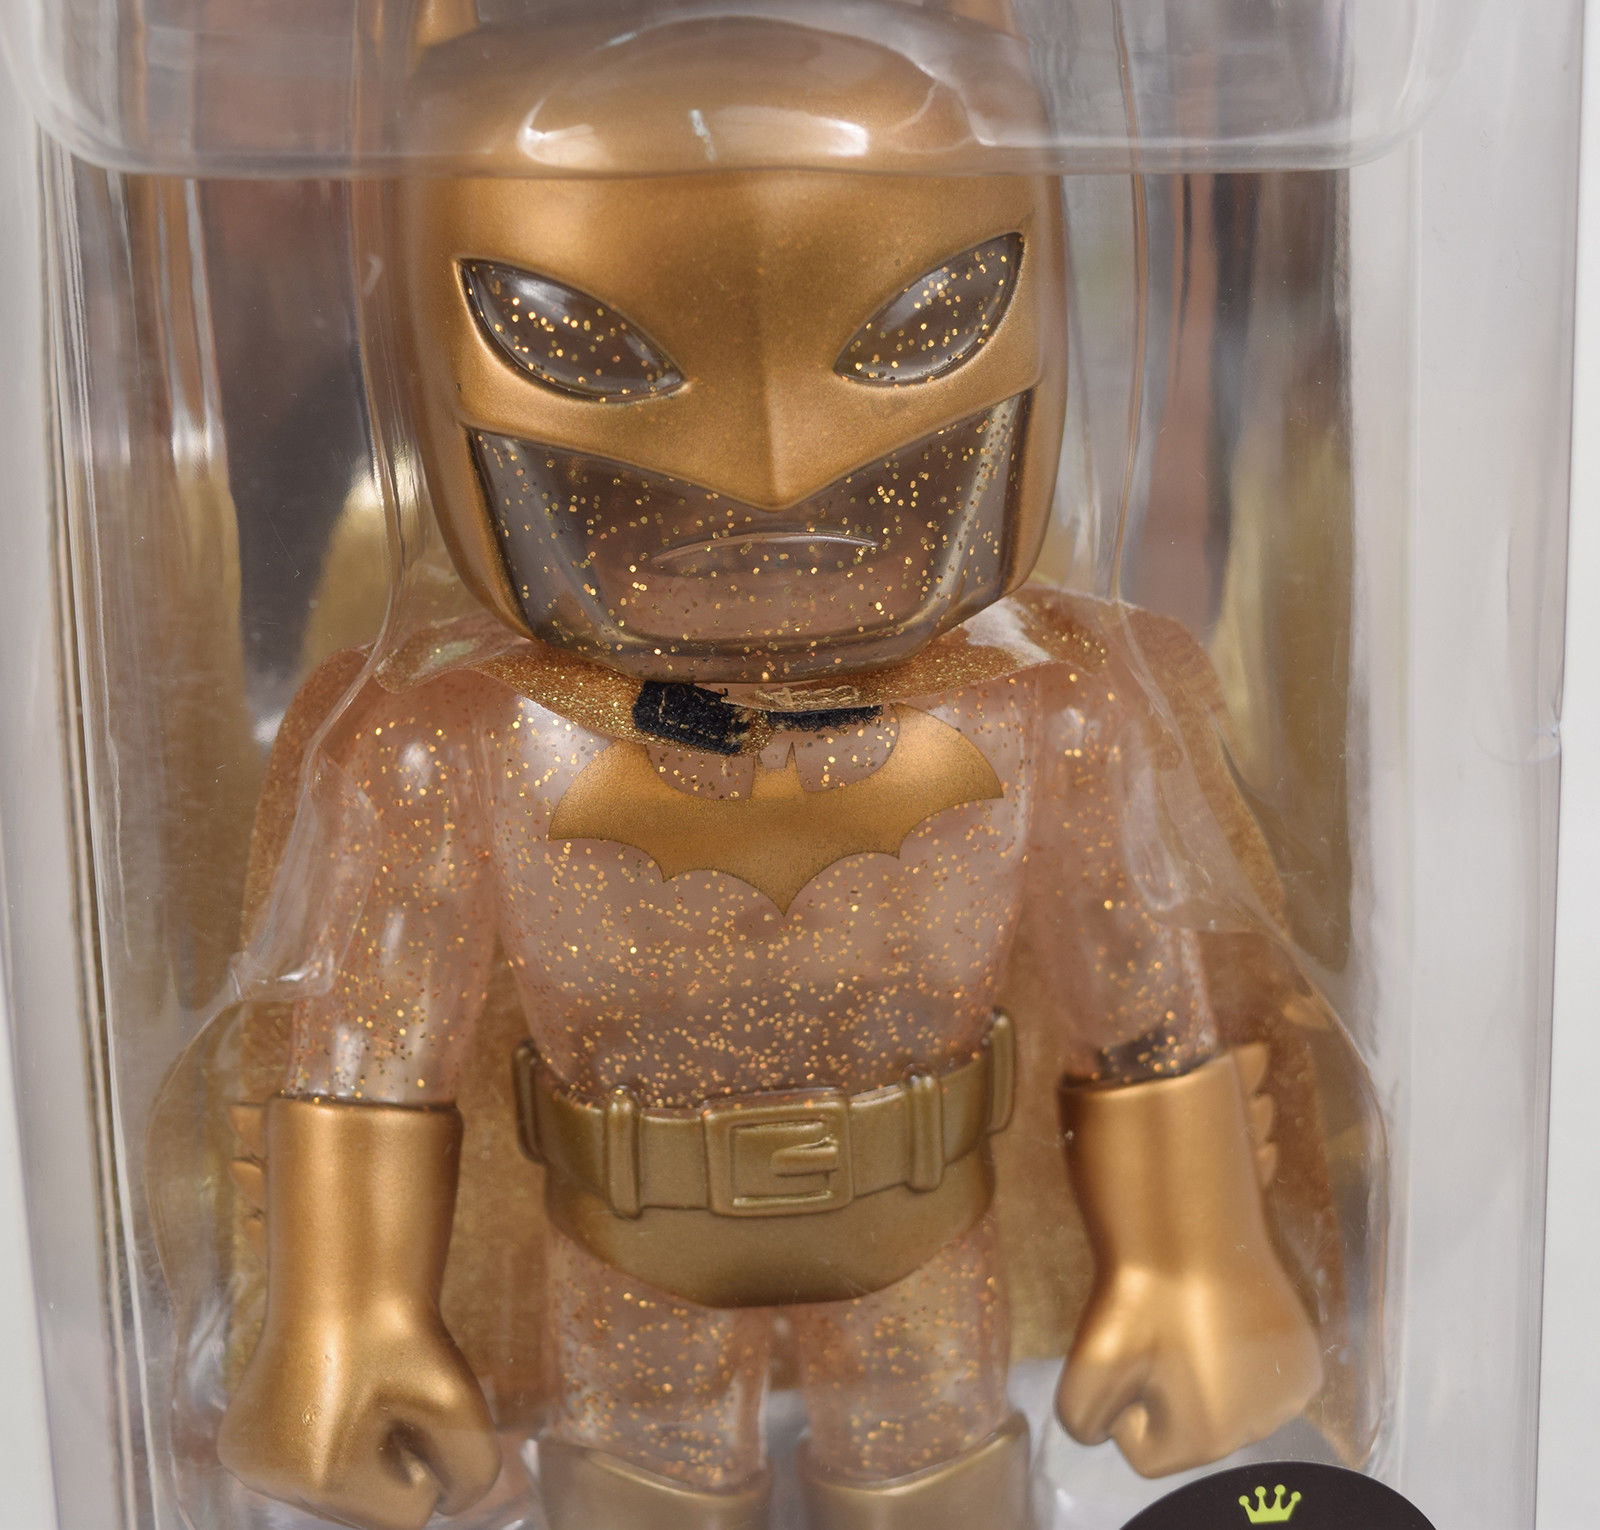 Funko Vinyl Hikari Japanese Gold Batman Limited Edition 500 Gold Glitter 7""